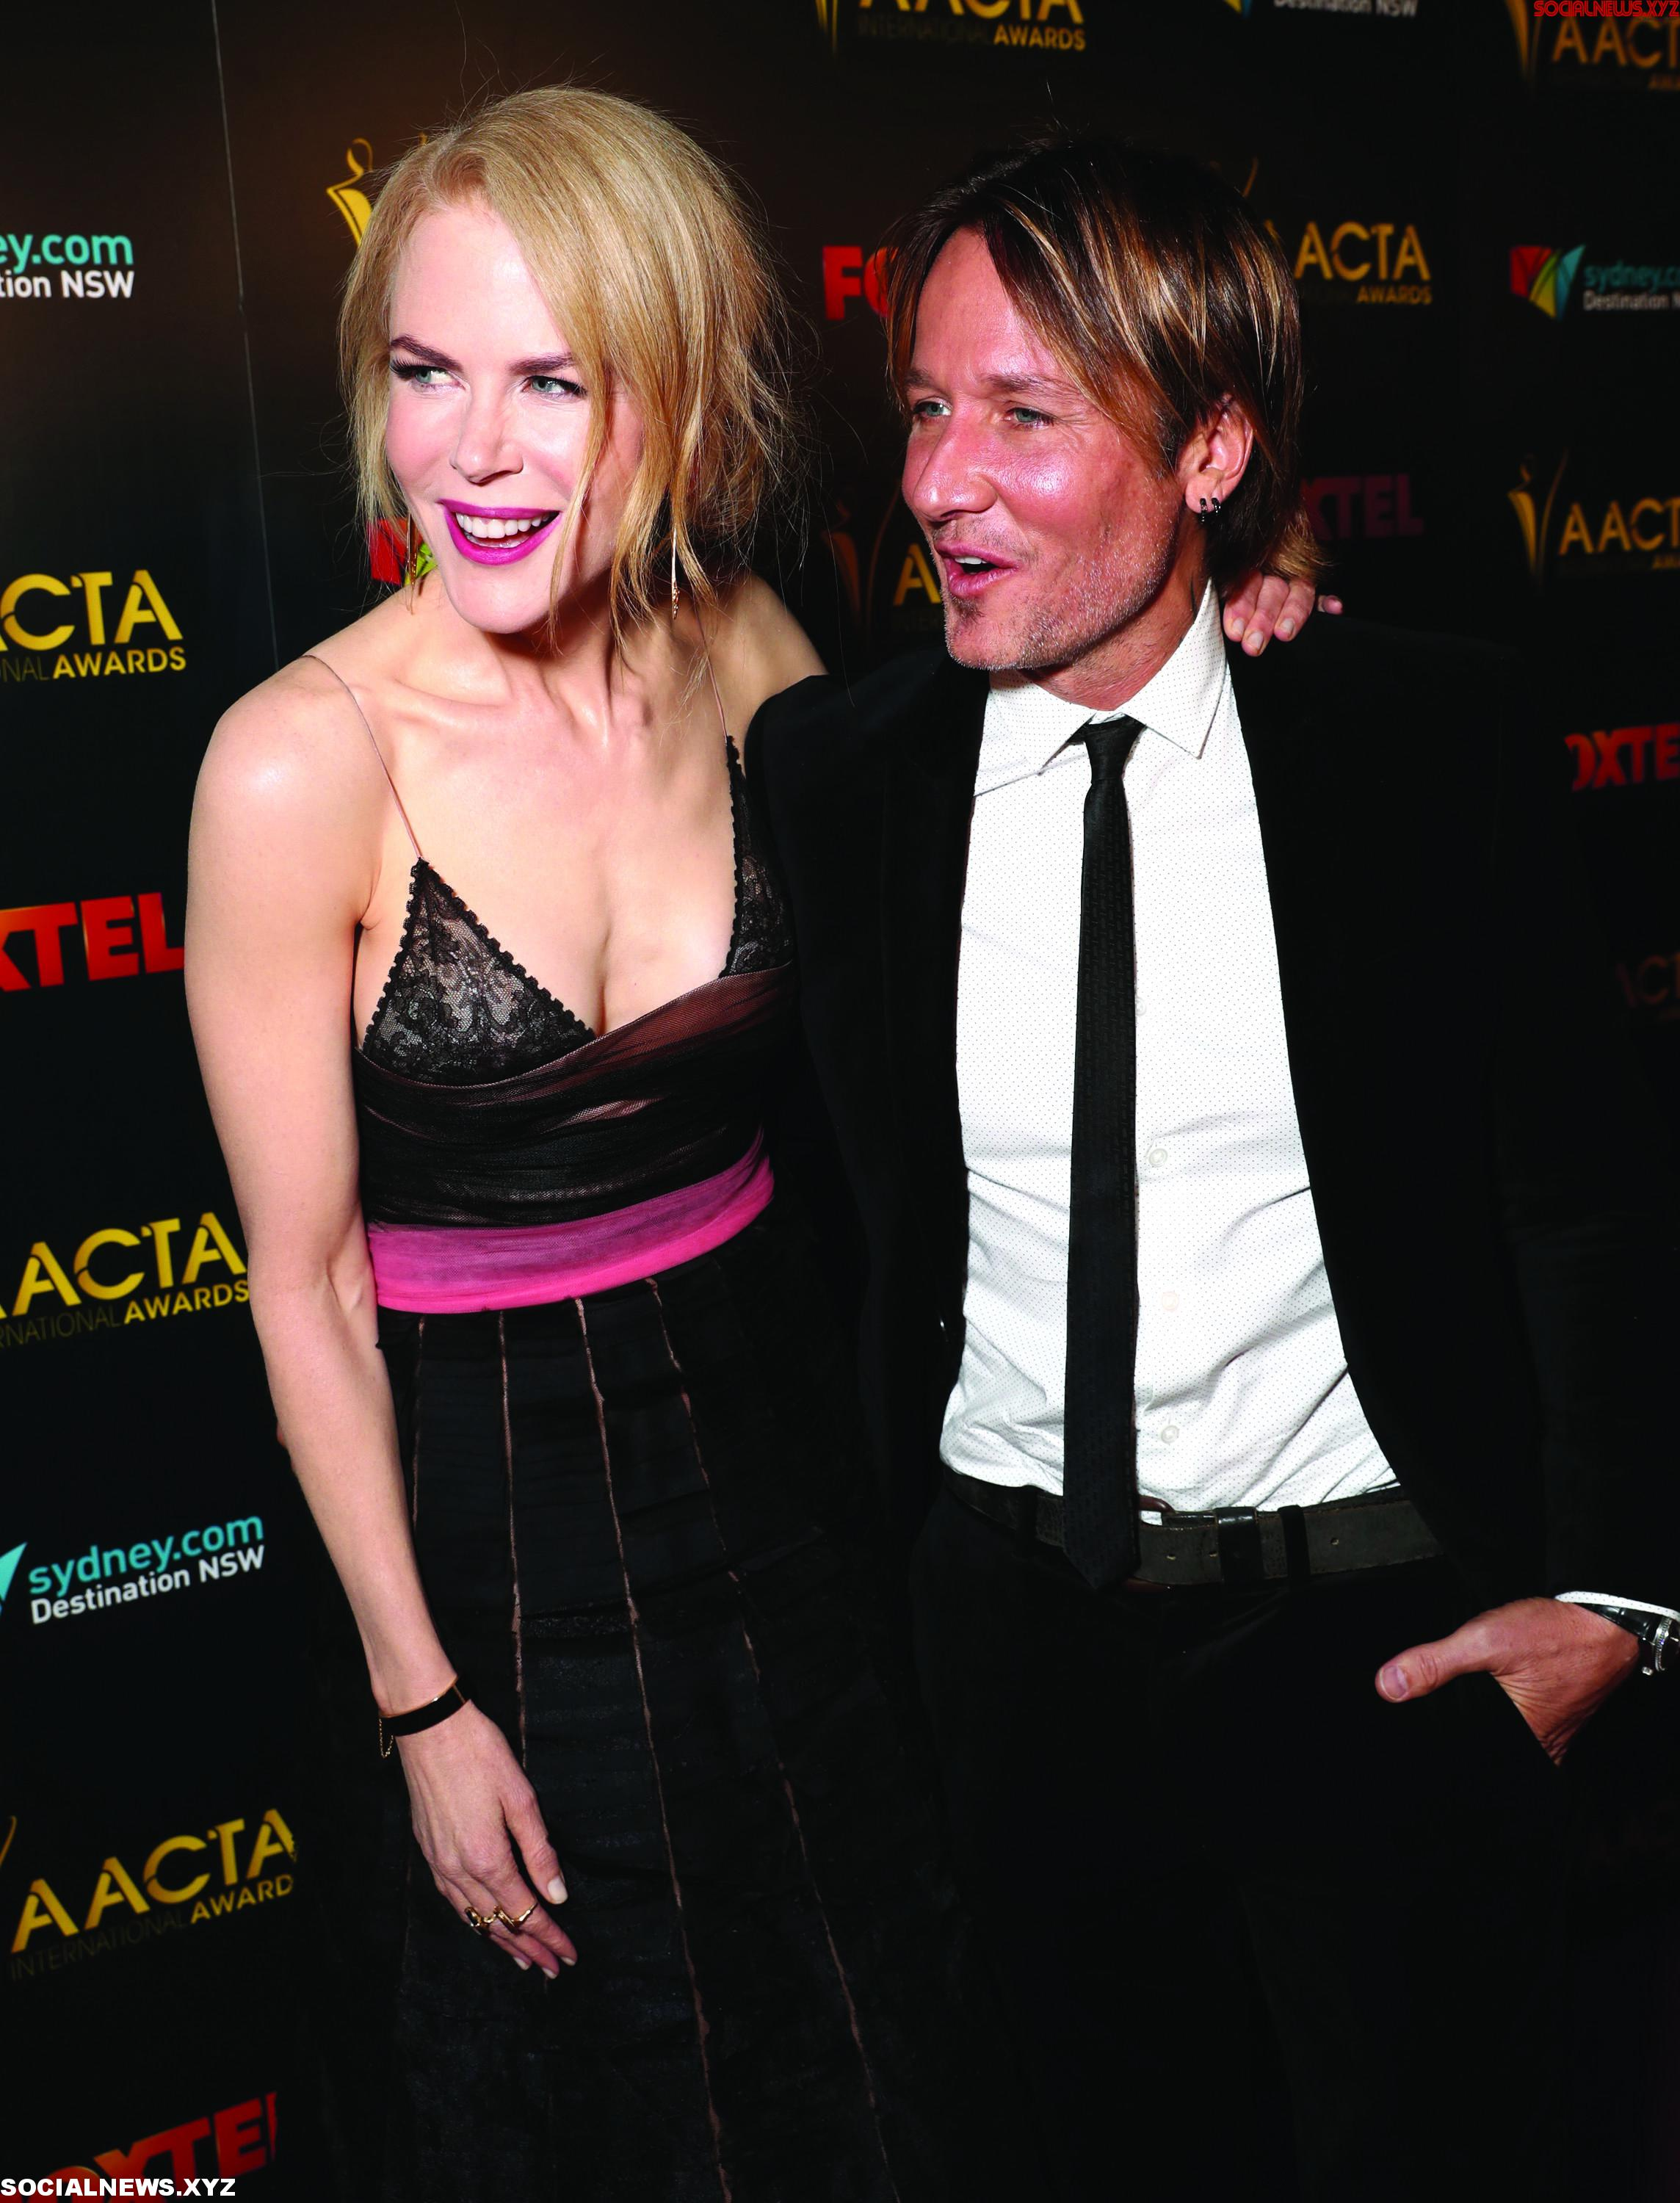 6th AACTA International Awards Red Carpet Arrivals Gallery Set 2